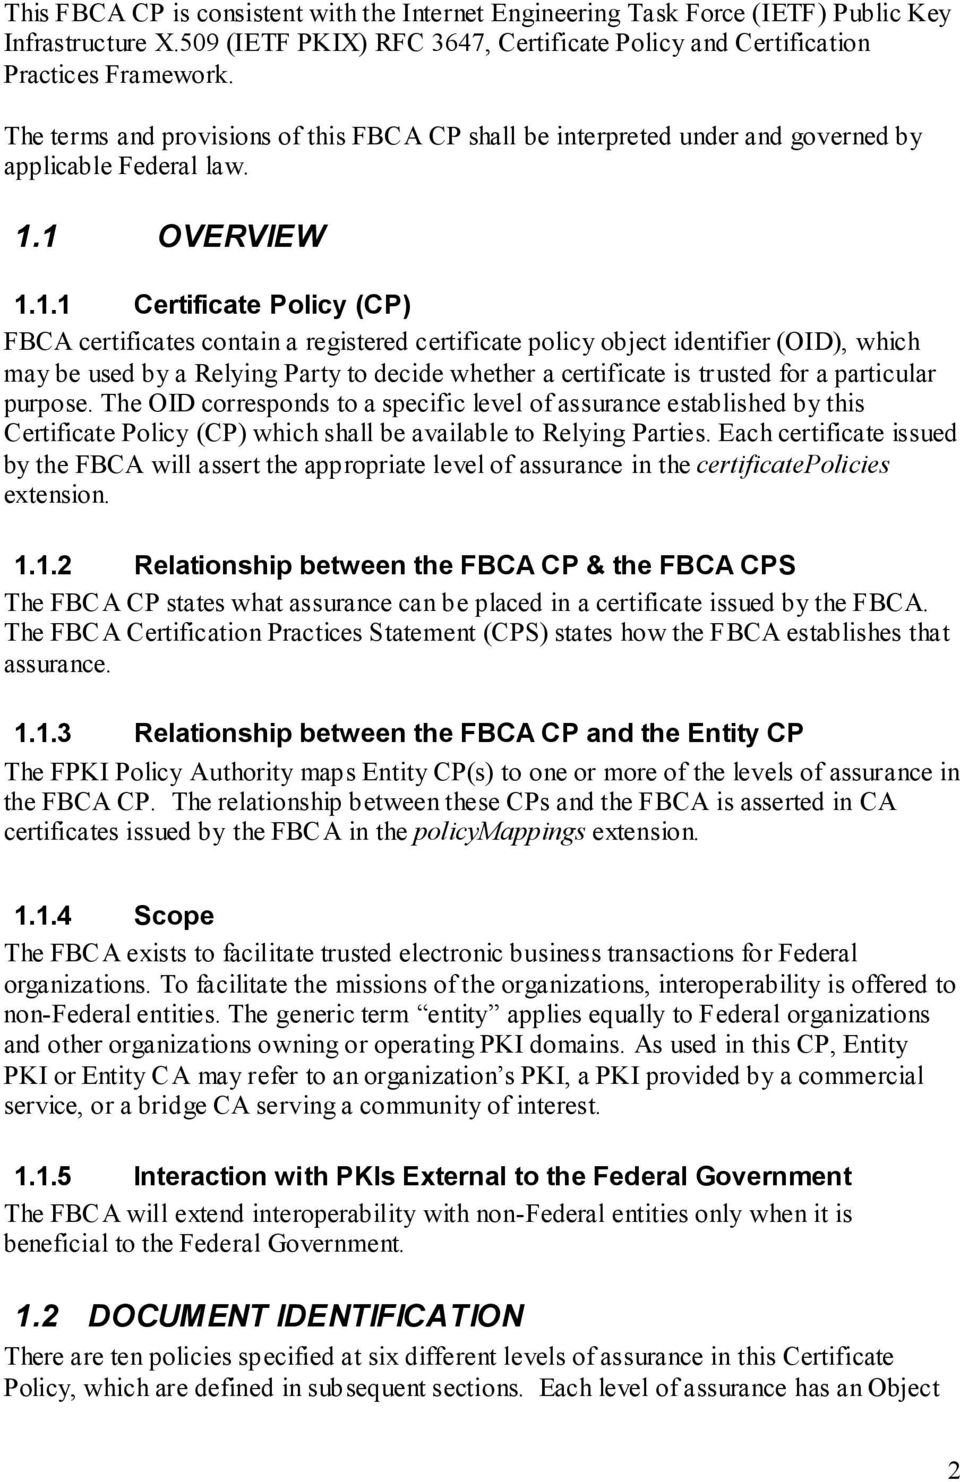 1 OVERVIEW 1.1.1 Certificate Policy (CP) FBCA certificates contain a registered certificate policy object identifier (OID), which may be used by a Relying Party to decide whether a certificate is